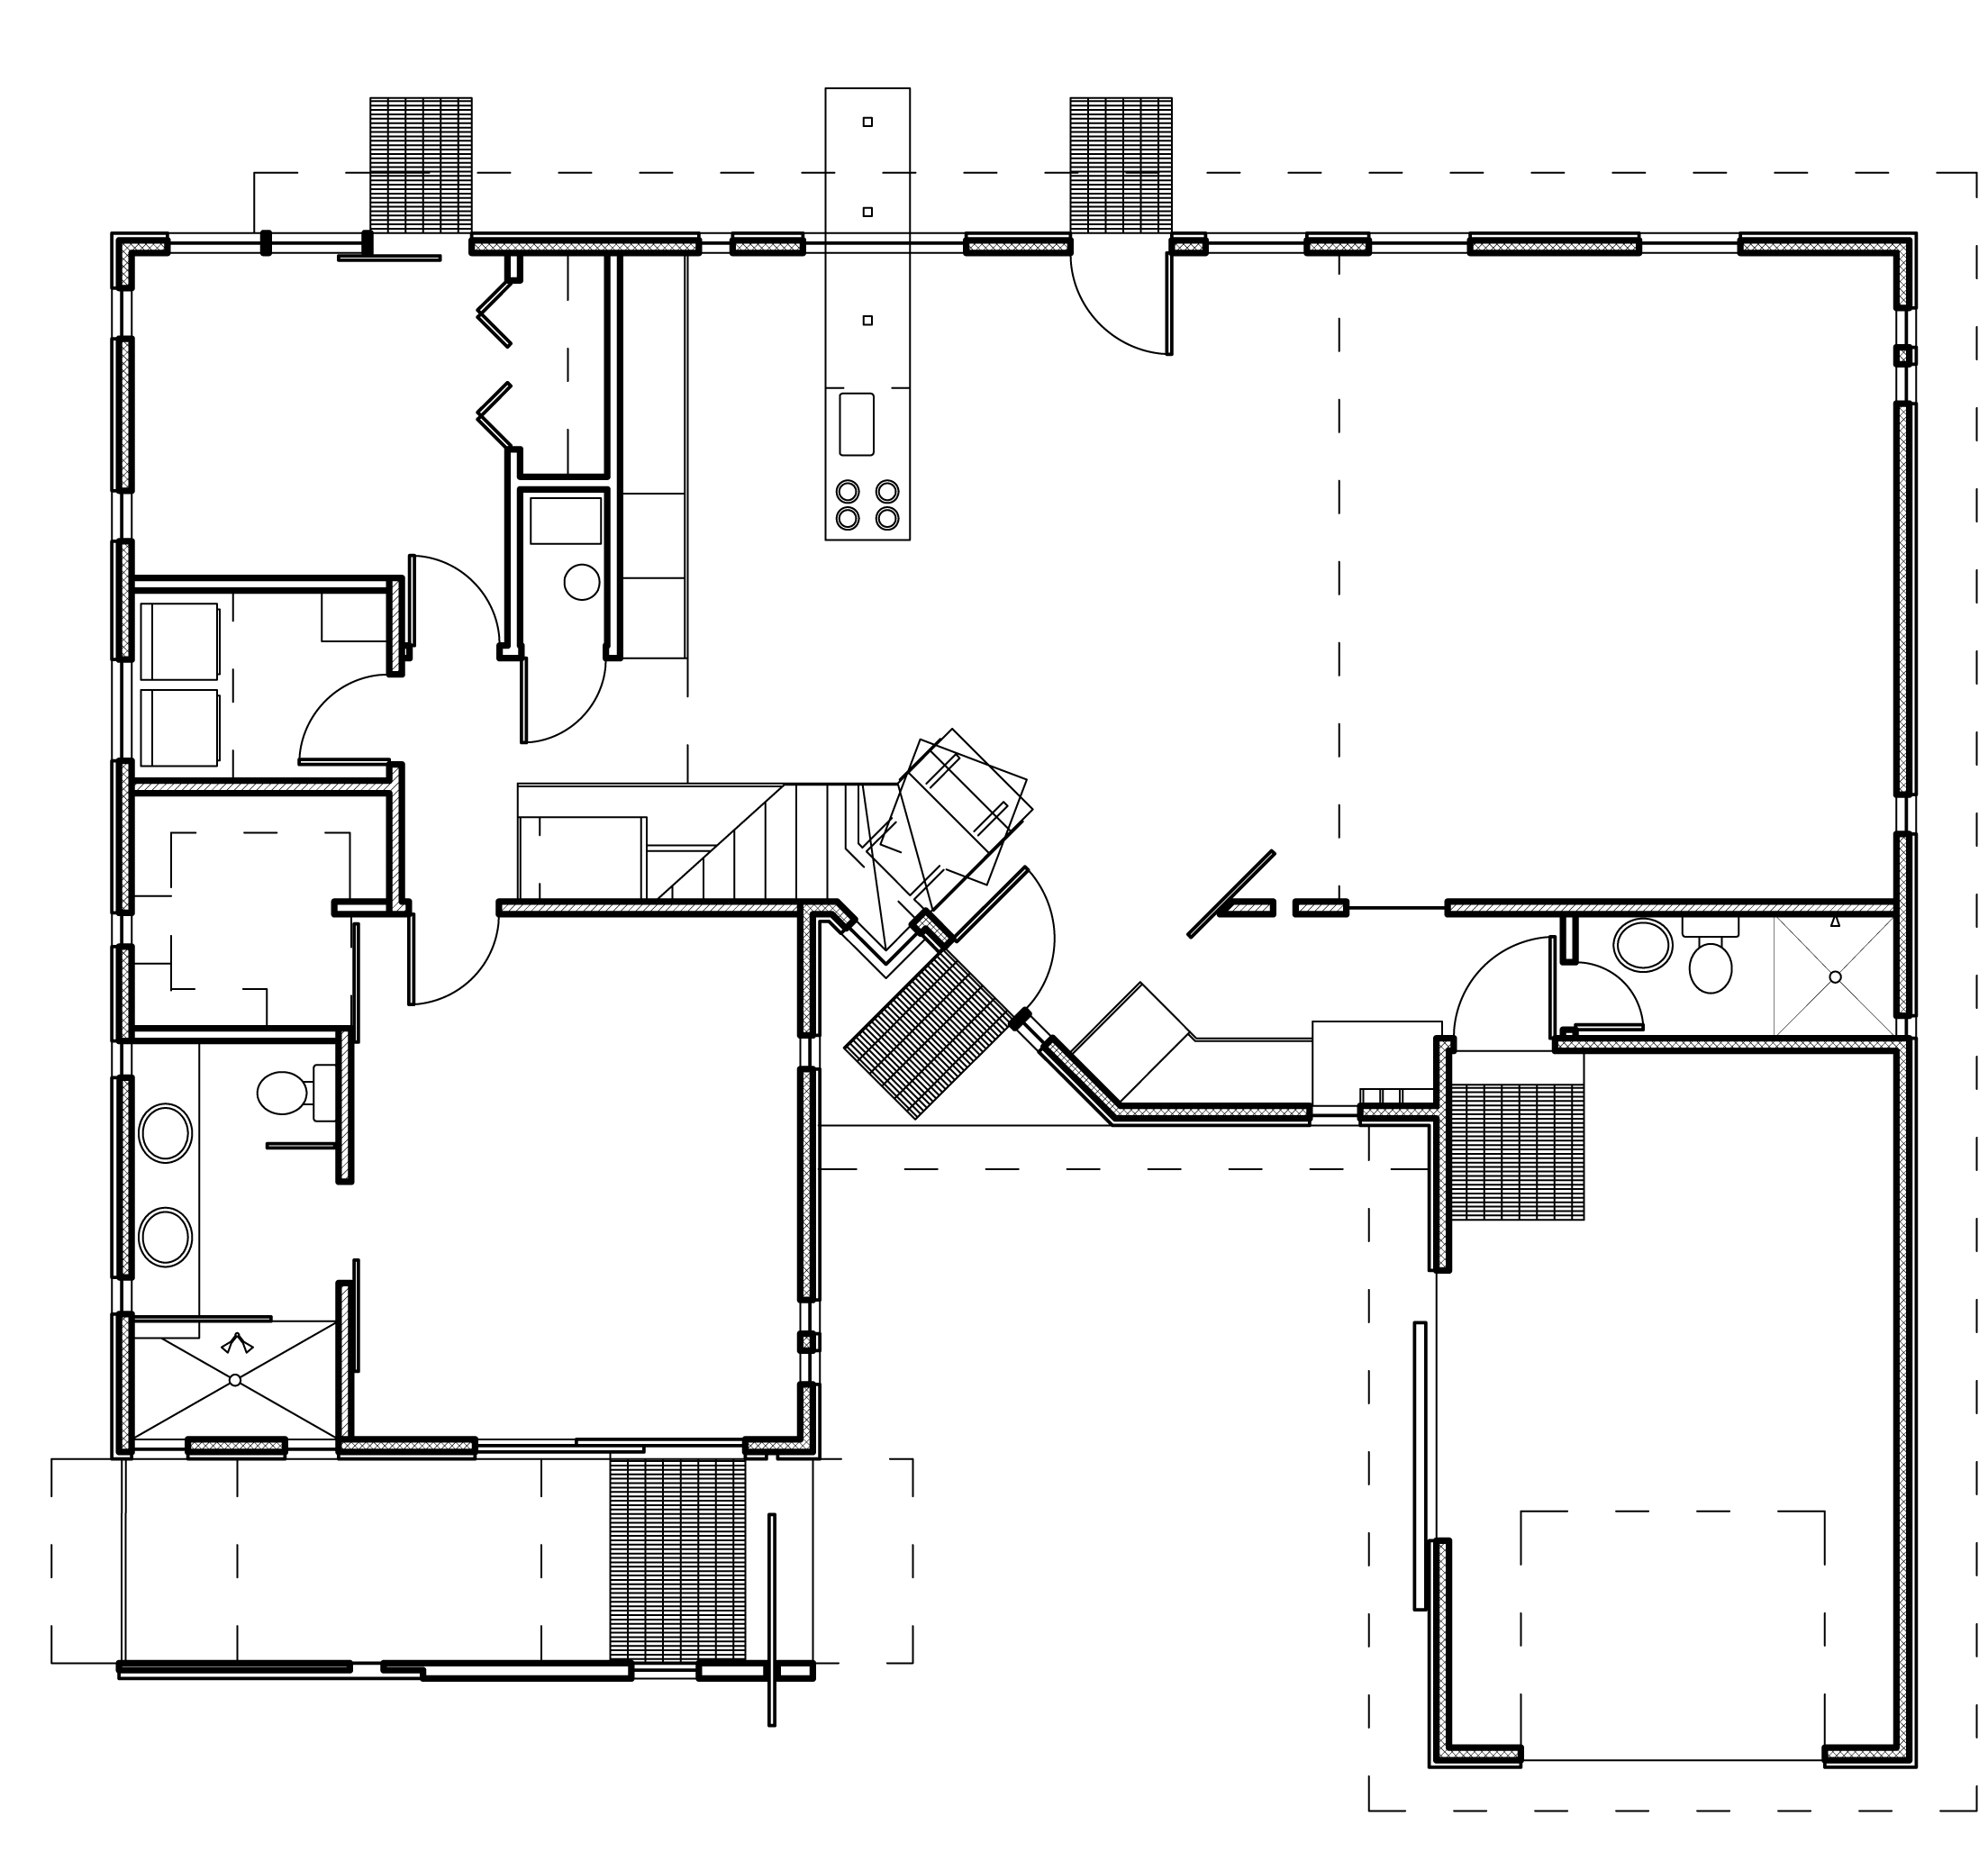 Modern house plans contemporary home designs floor plan 03 for Contemporary house floor plans